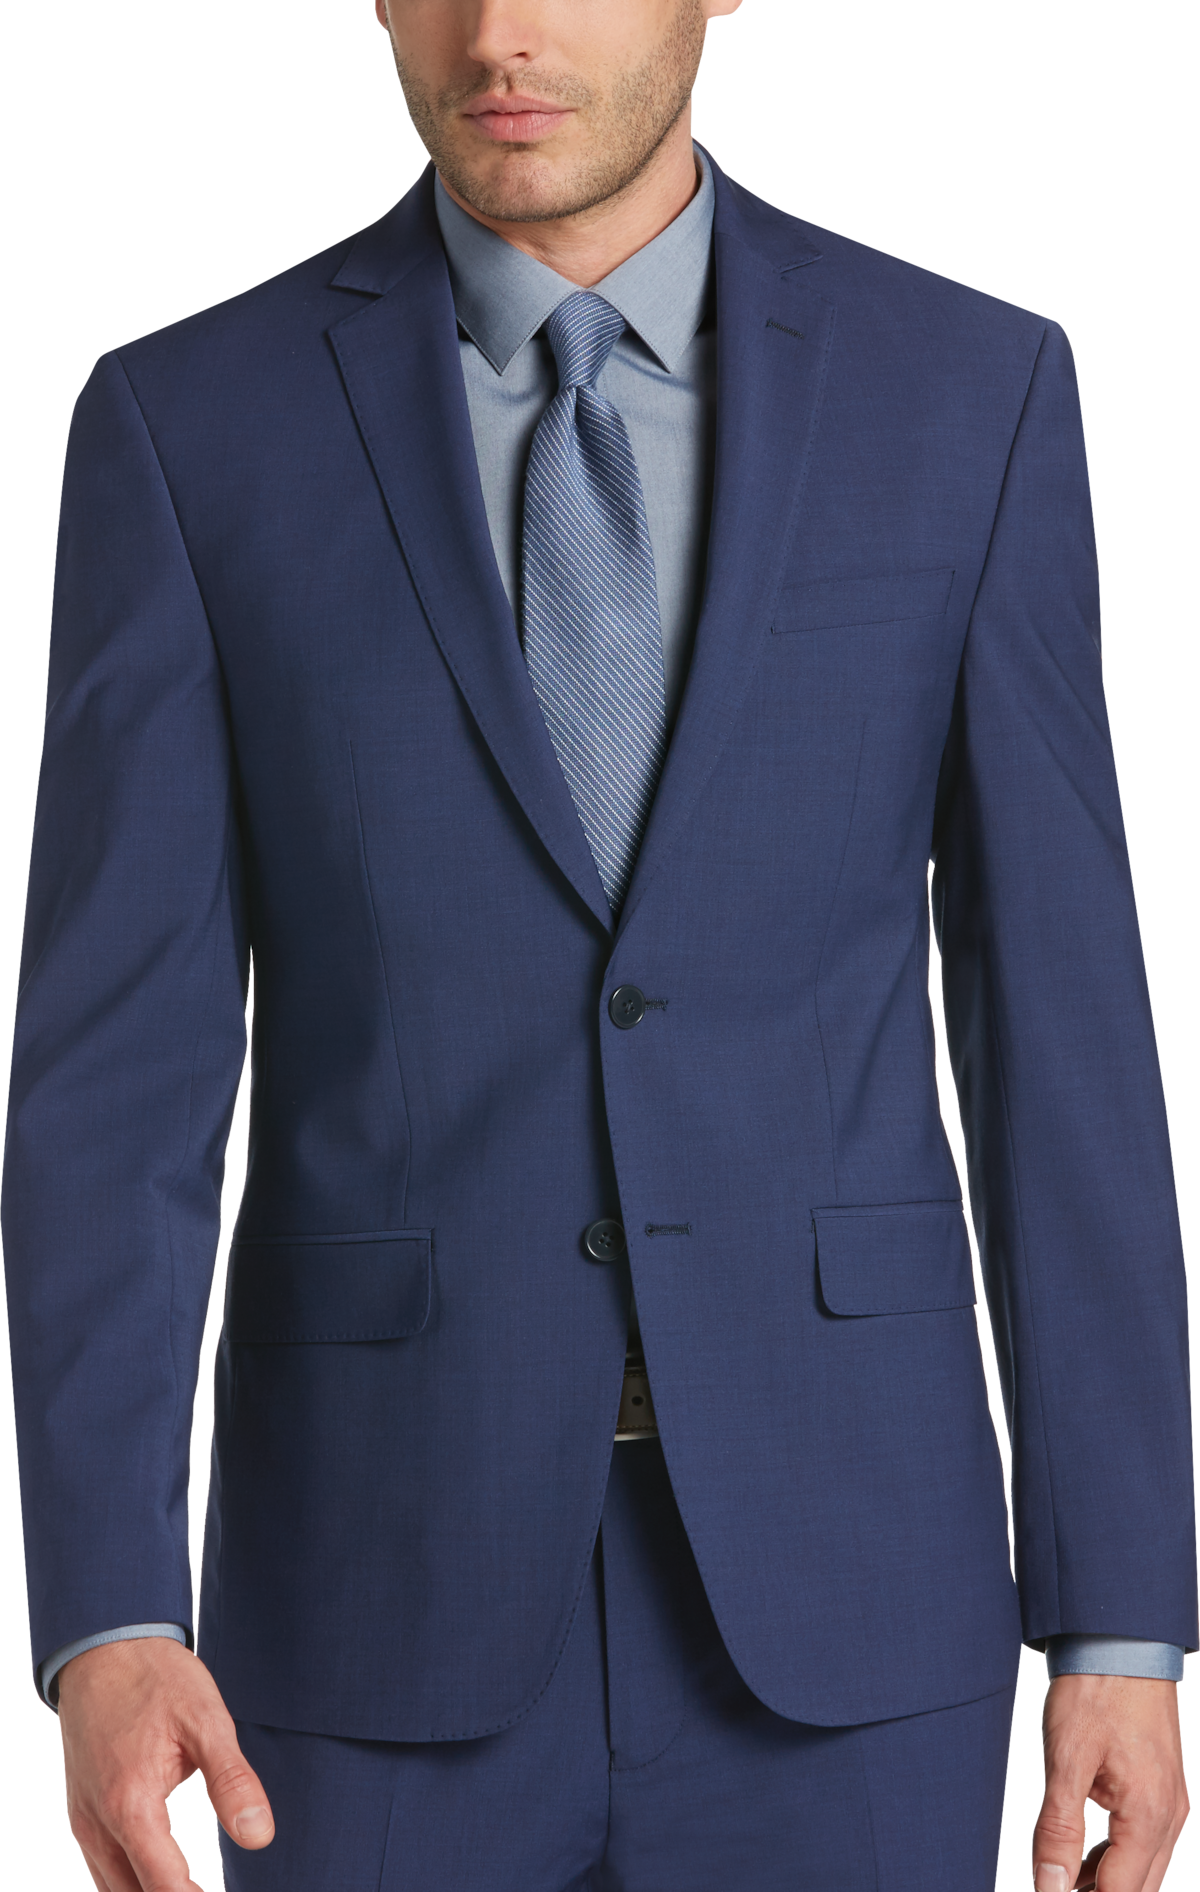 Blue Suit Shop For Navy Blue Dark Blue Suits Men S Wearhouse